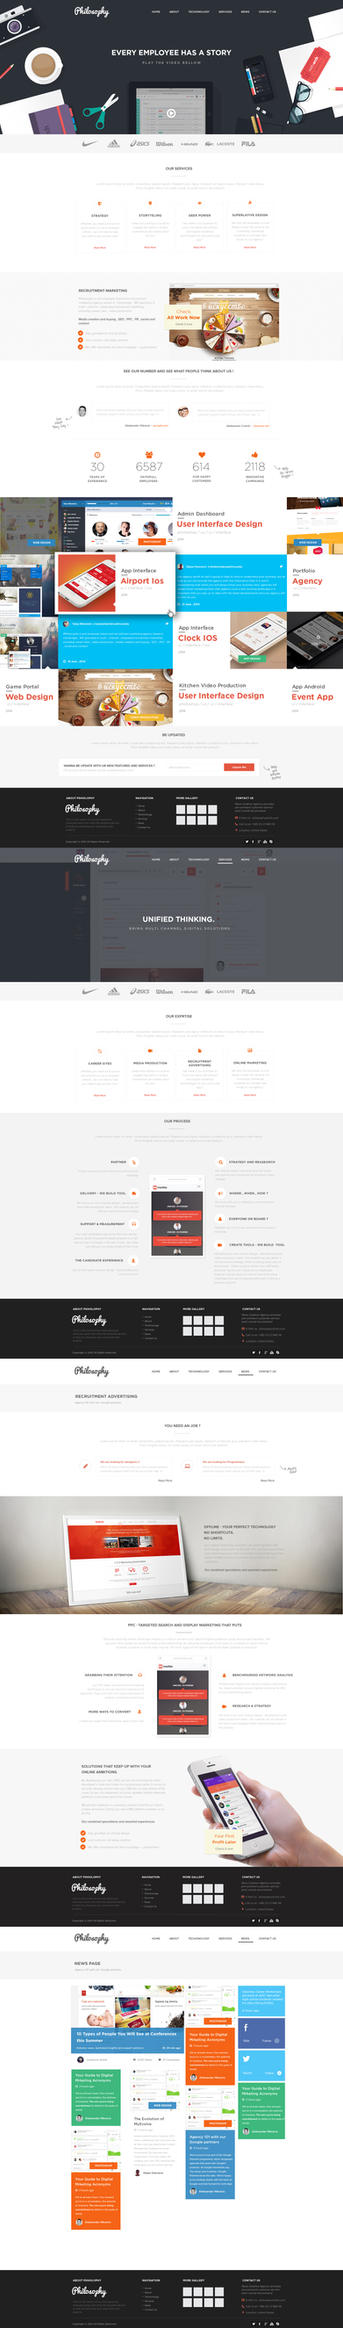 Branding Agency Web Design by vasiligfx